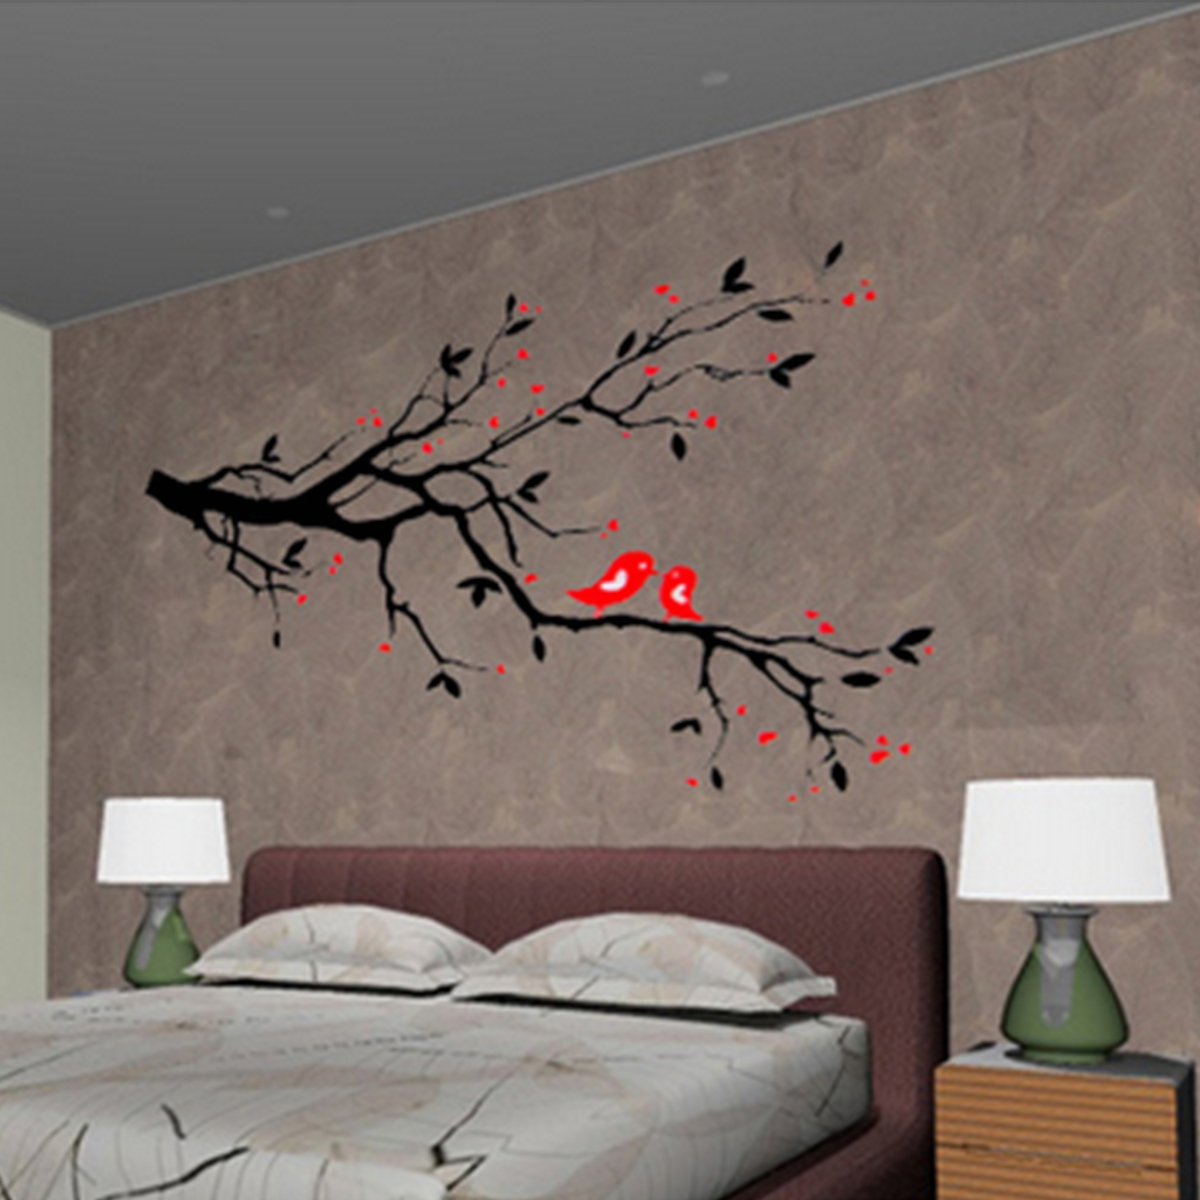 "19.68""x27.55"" Love Heart Tree Bird windowsticker Removable Vinyl Wall Decal Sticker Art Mural Home Decor"